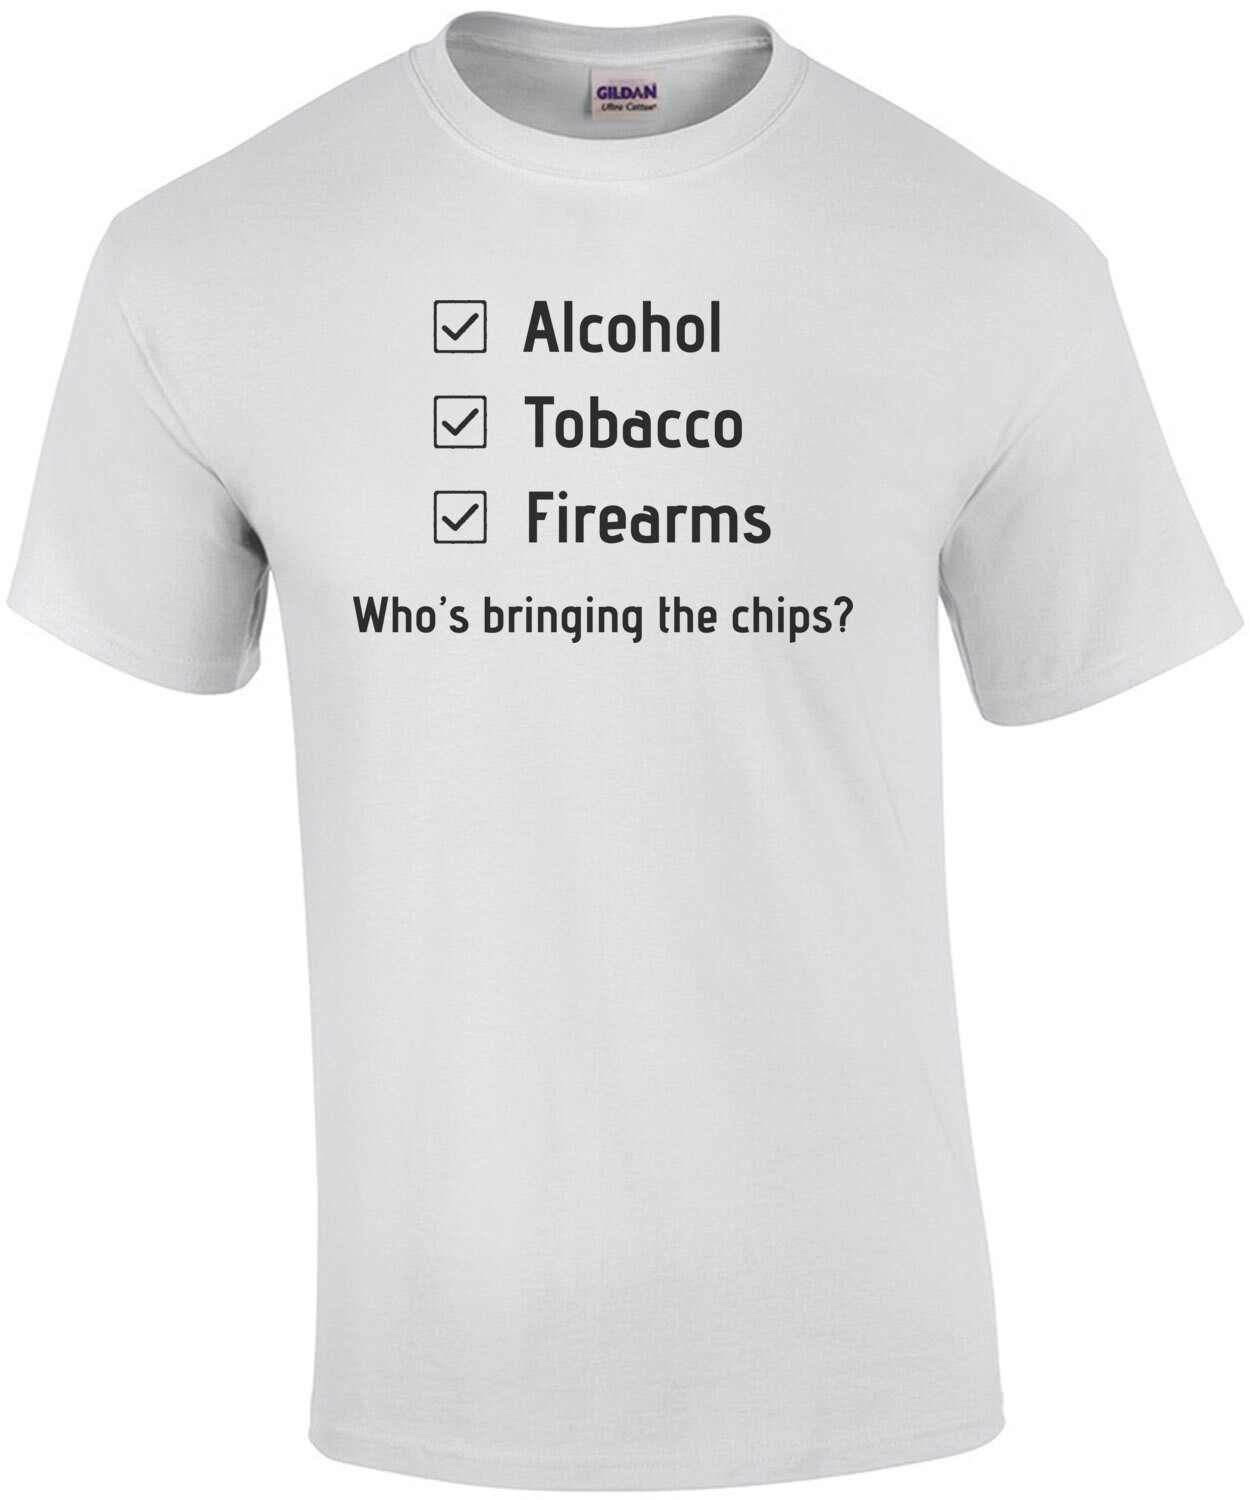 ALCOHOL, TOBACCO, FIREARMS. WHO'S BRINGING THE CHIPS? Shirt